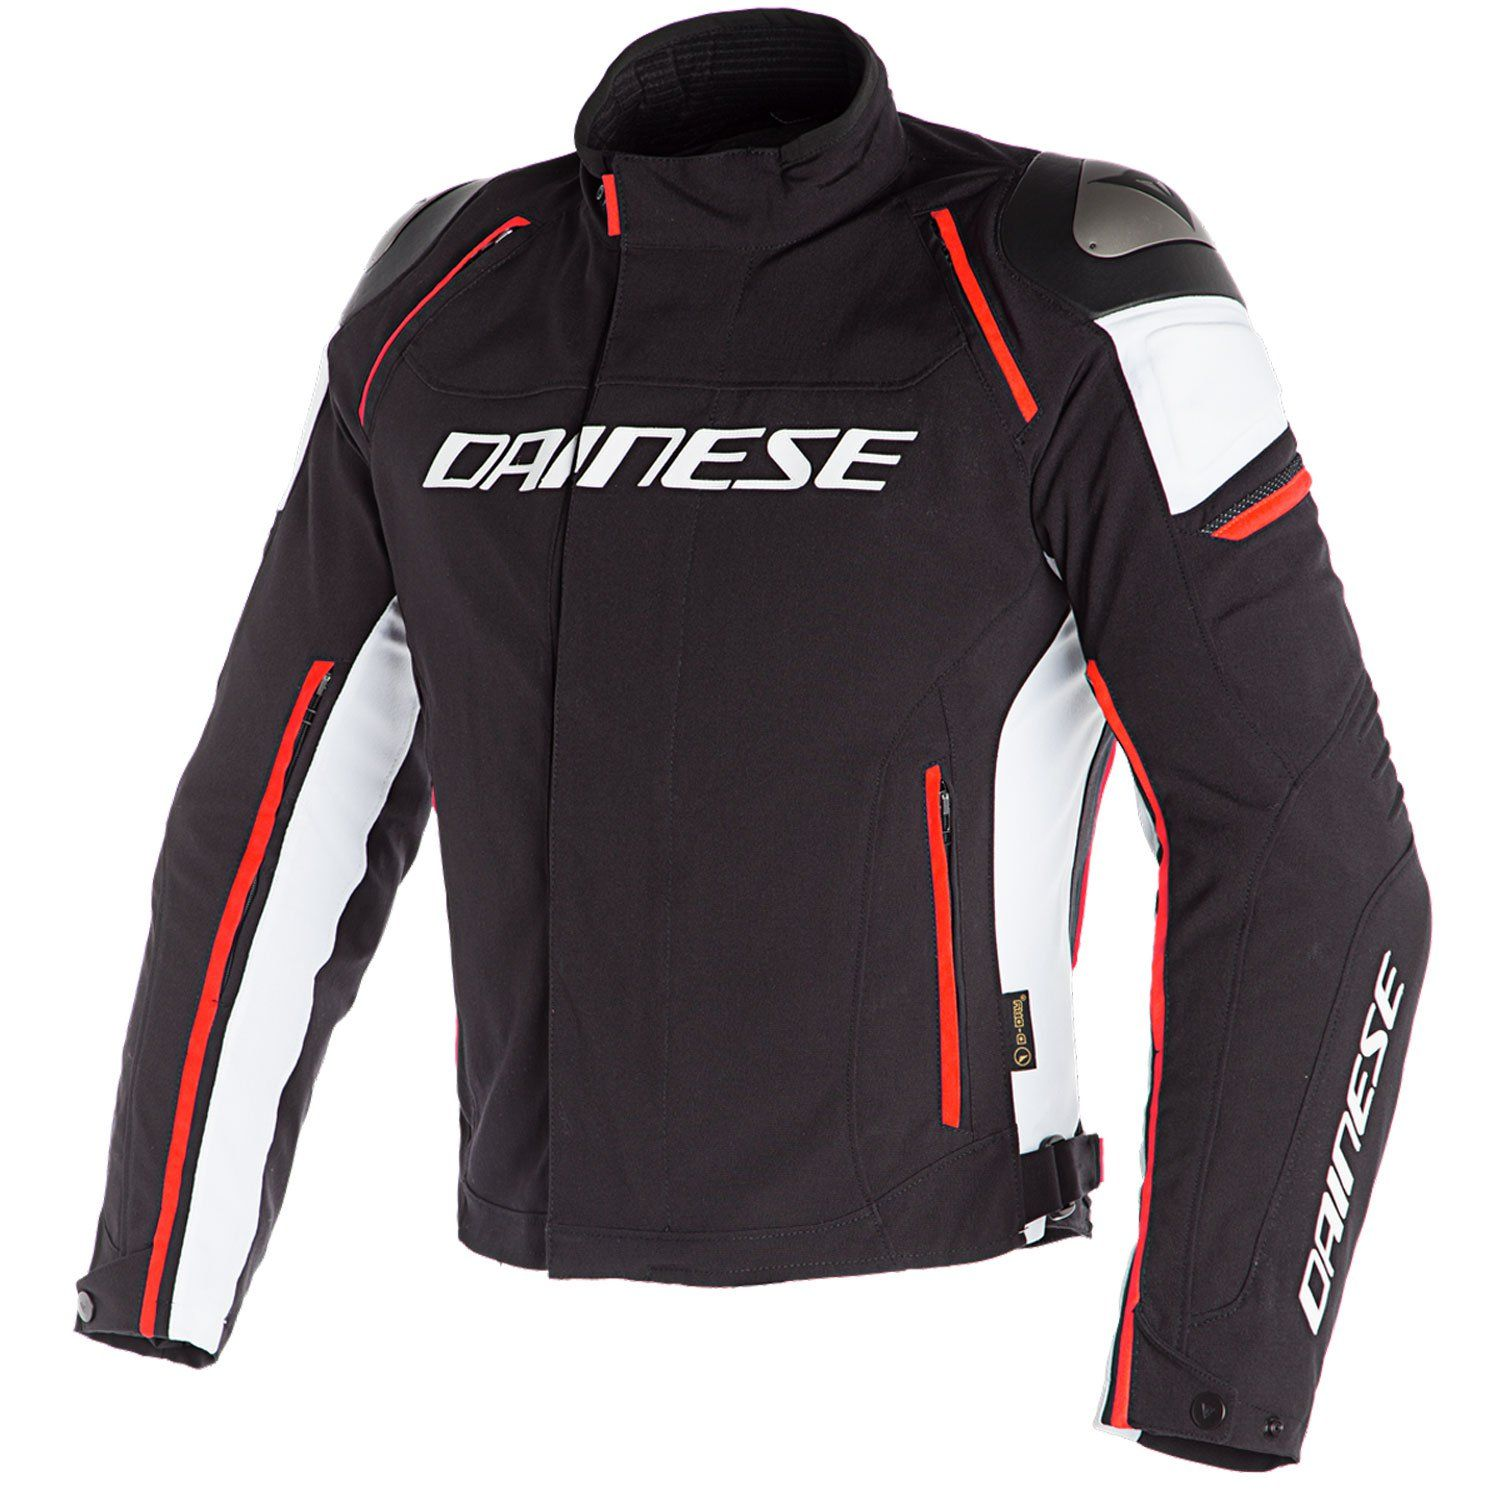 dainese racing 3 d dry textiljacke online shop zweirad. Black Bedroom Furniture Sets. Home Design Ideas